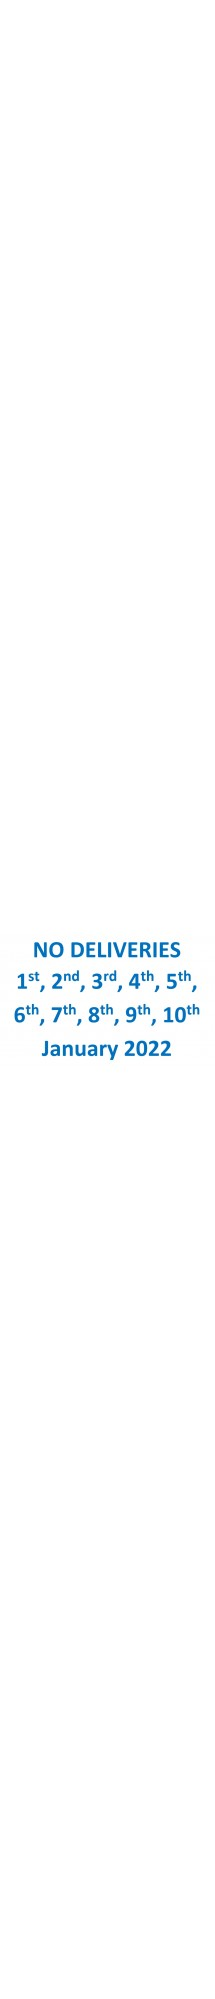 No Deliveries Jan 1 2 3 4